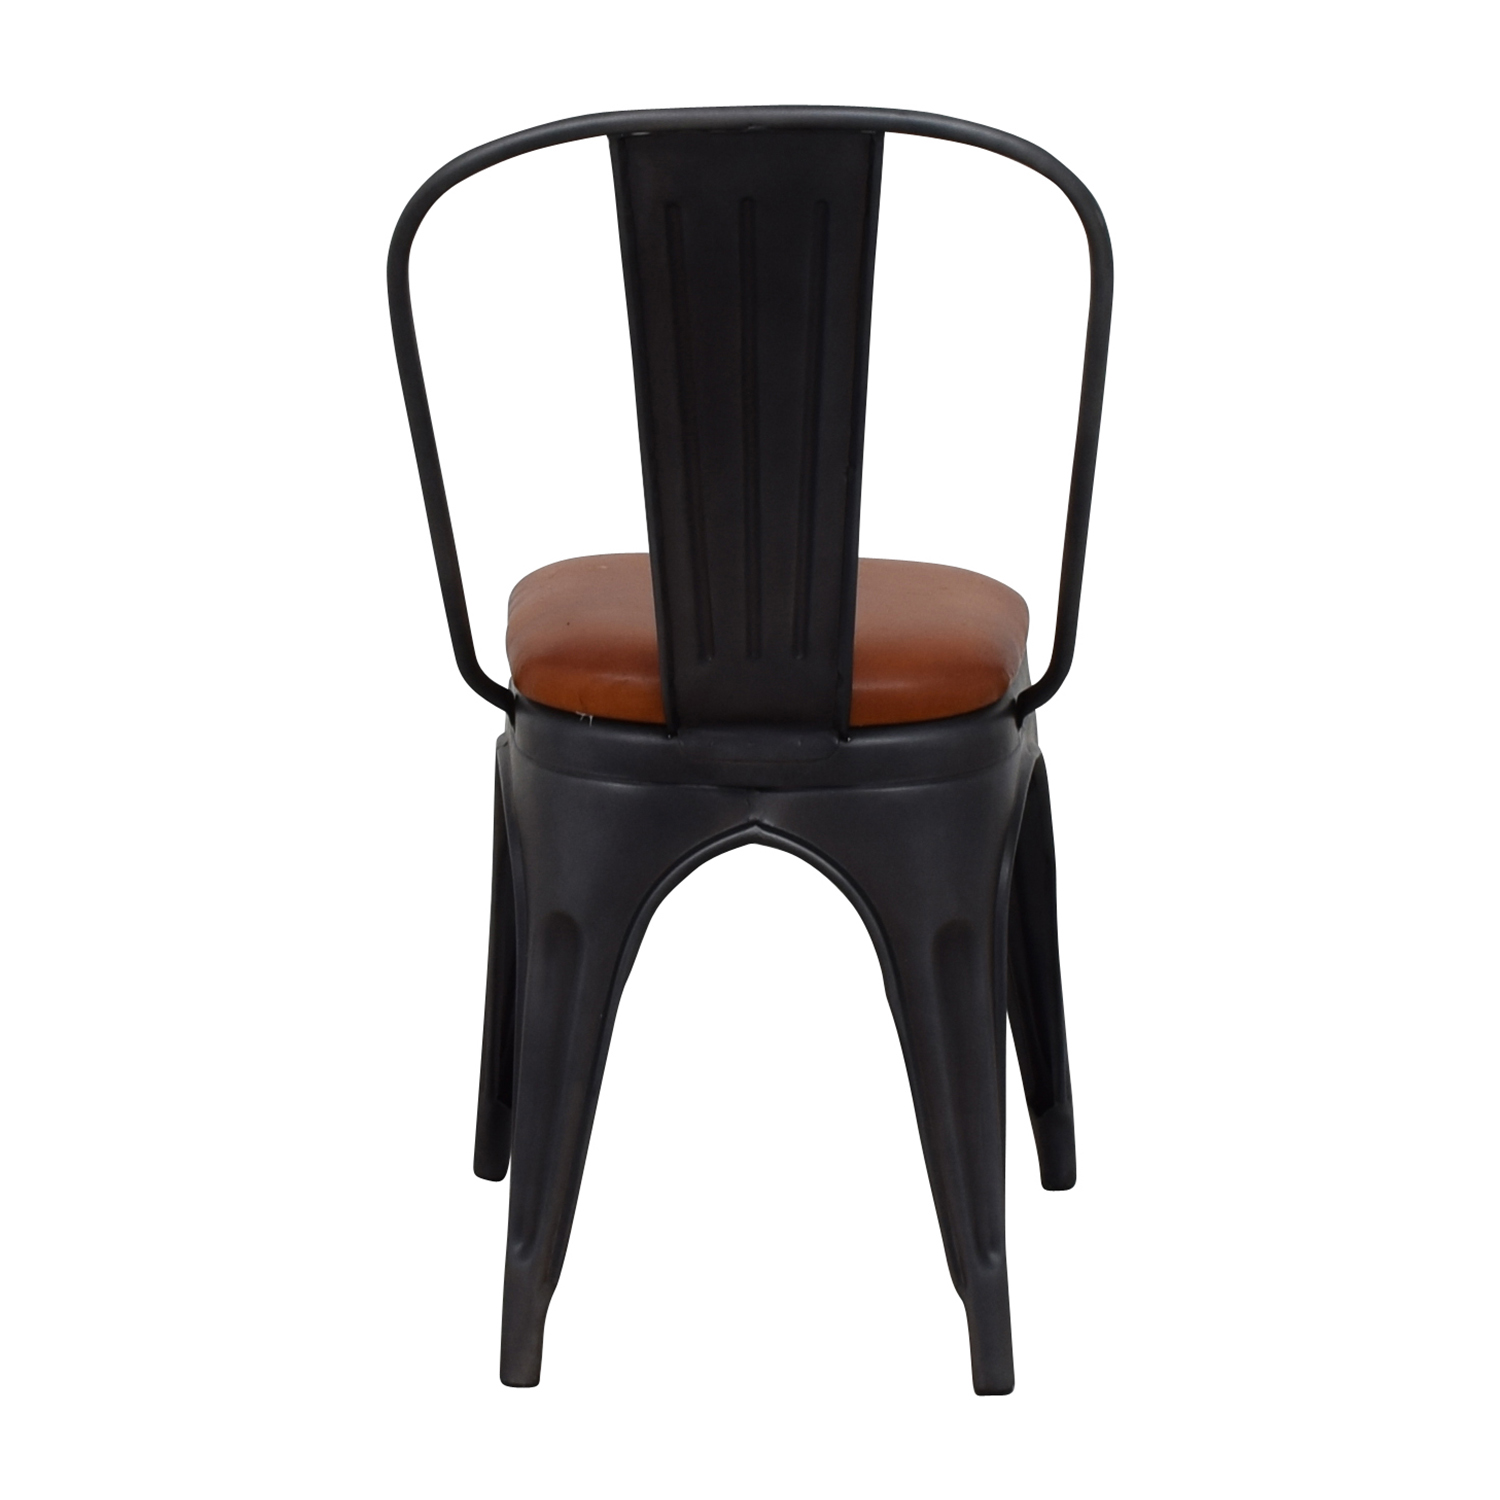 Modern Steel Desk Chair with Brown Leather Seat discount